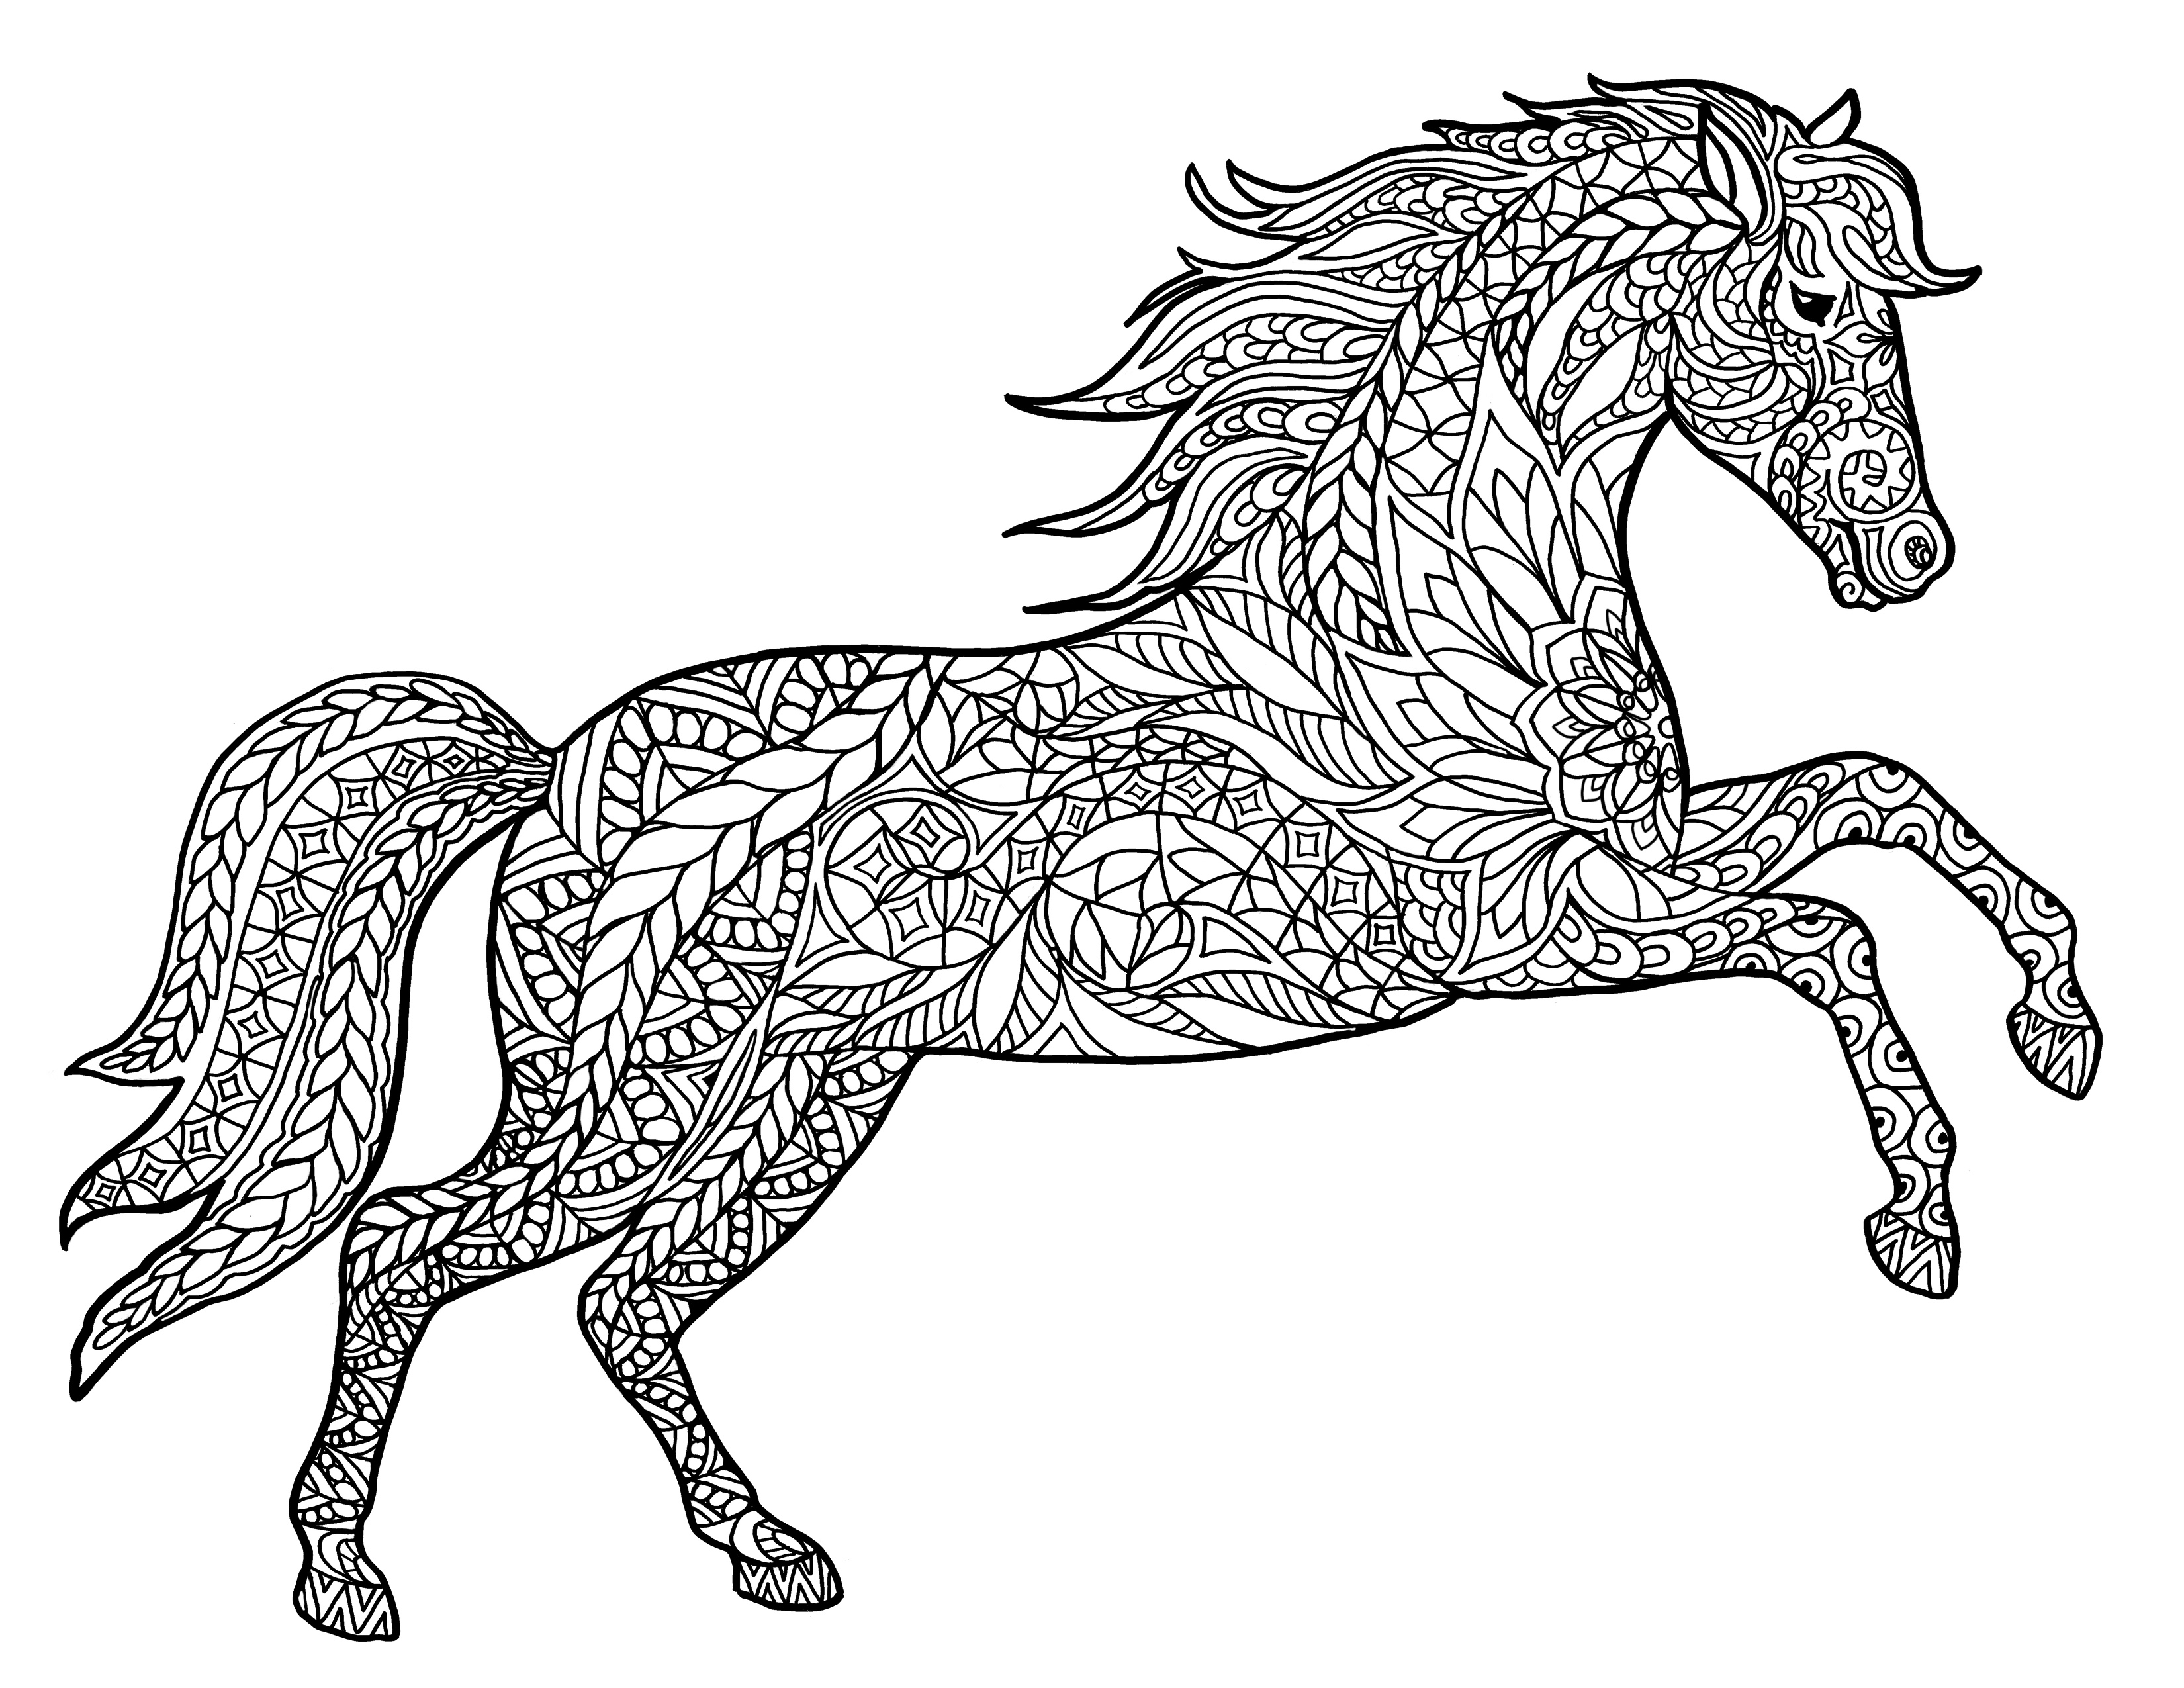 animal coloring page get this cute baby animal coloring pages to print y21ma animal coloring page